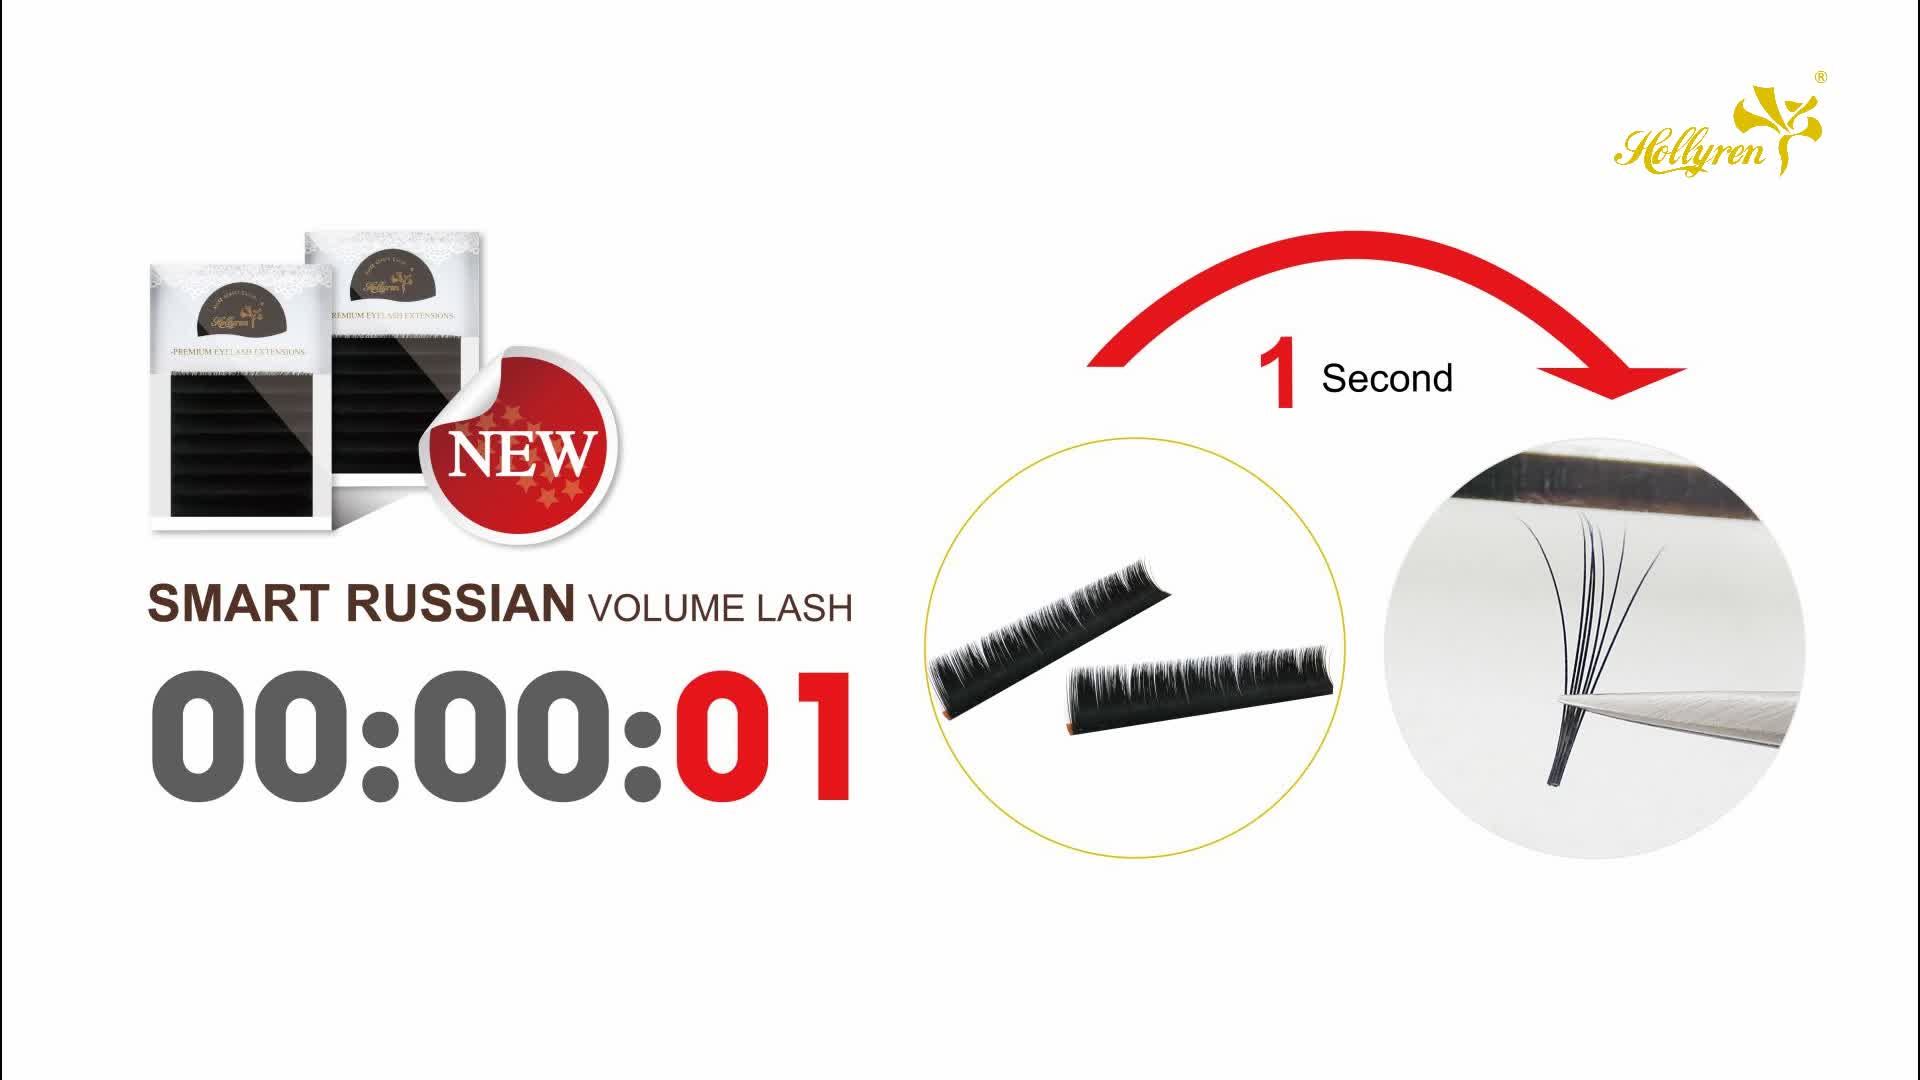 Hollyren Auto Easy Fan Smart Eyelash Extensions Volume New Wholesale Eyelash Private Label 3D